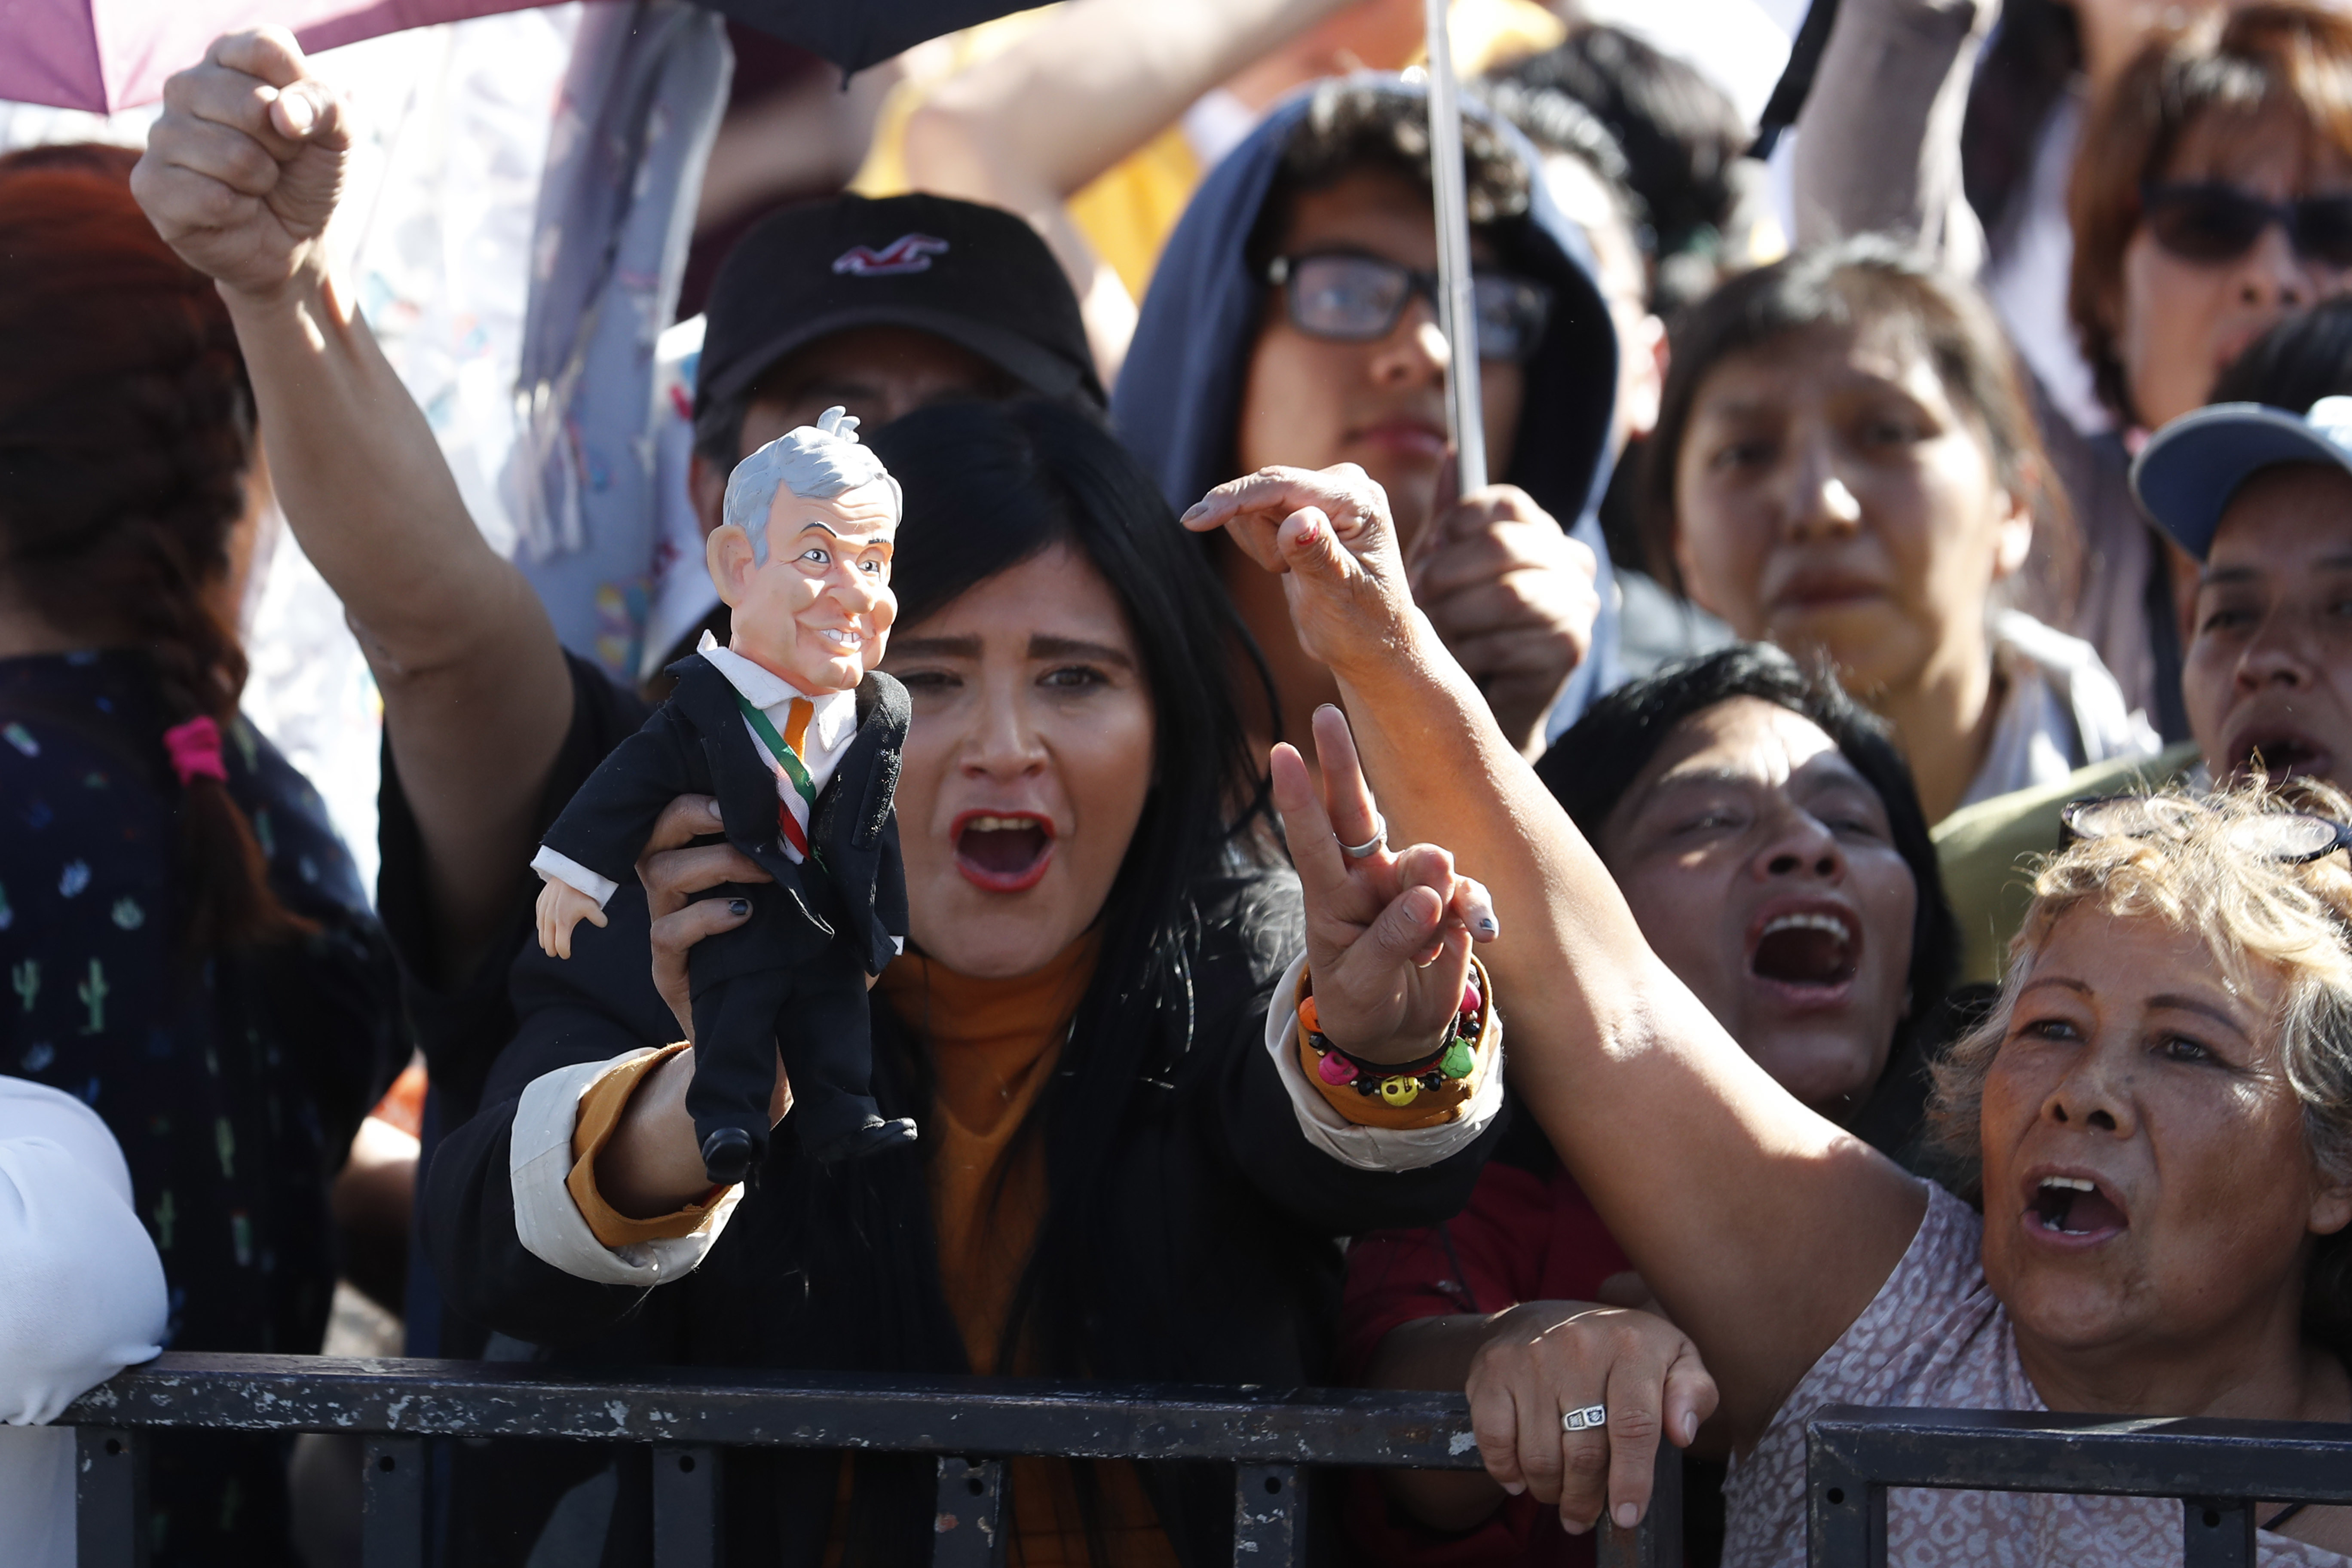 Celebrants get revved up as they gather in the Zocalo to see newly sworn-in President Andres Manuel Lopez Obrador, in Mexico City, Saturday, Dec. 1, 2018. Mexicans are getting more than just a new president Saturday. Lopez Obrador took the oath of office Saturday as Mexico's first leftist president in over 70 years, marking a turning point in one of the world's most radical experiments in opening markets and privatization. (AP Photo/Moises Castillo)